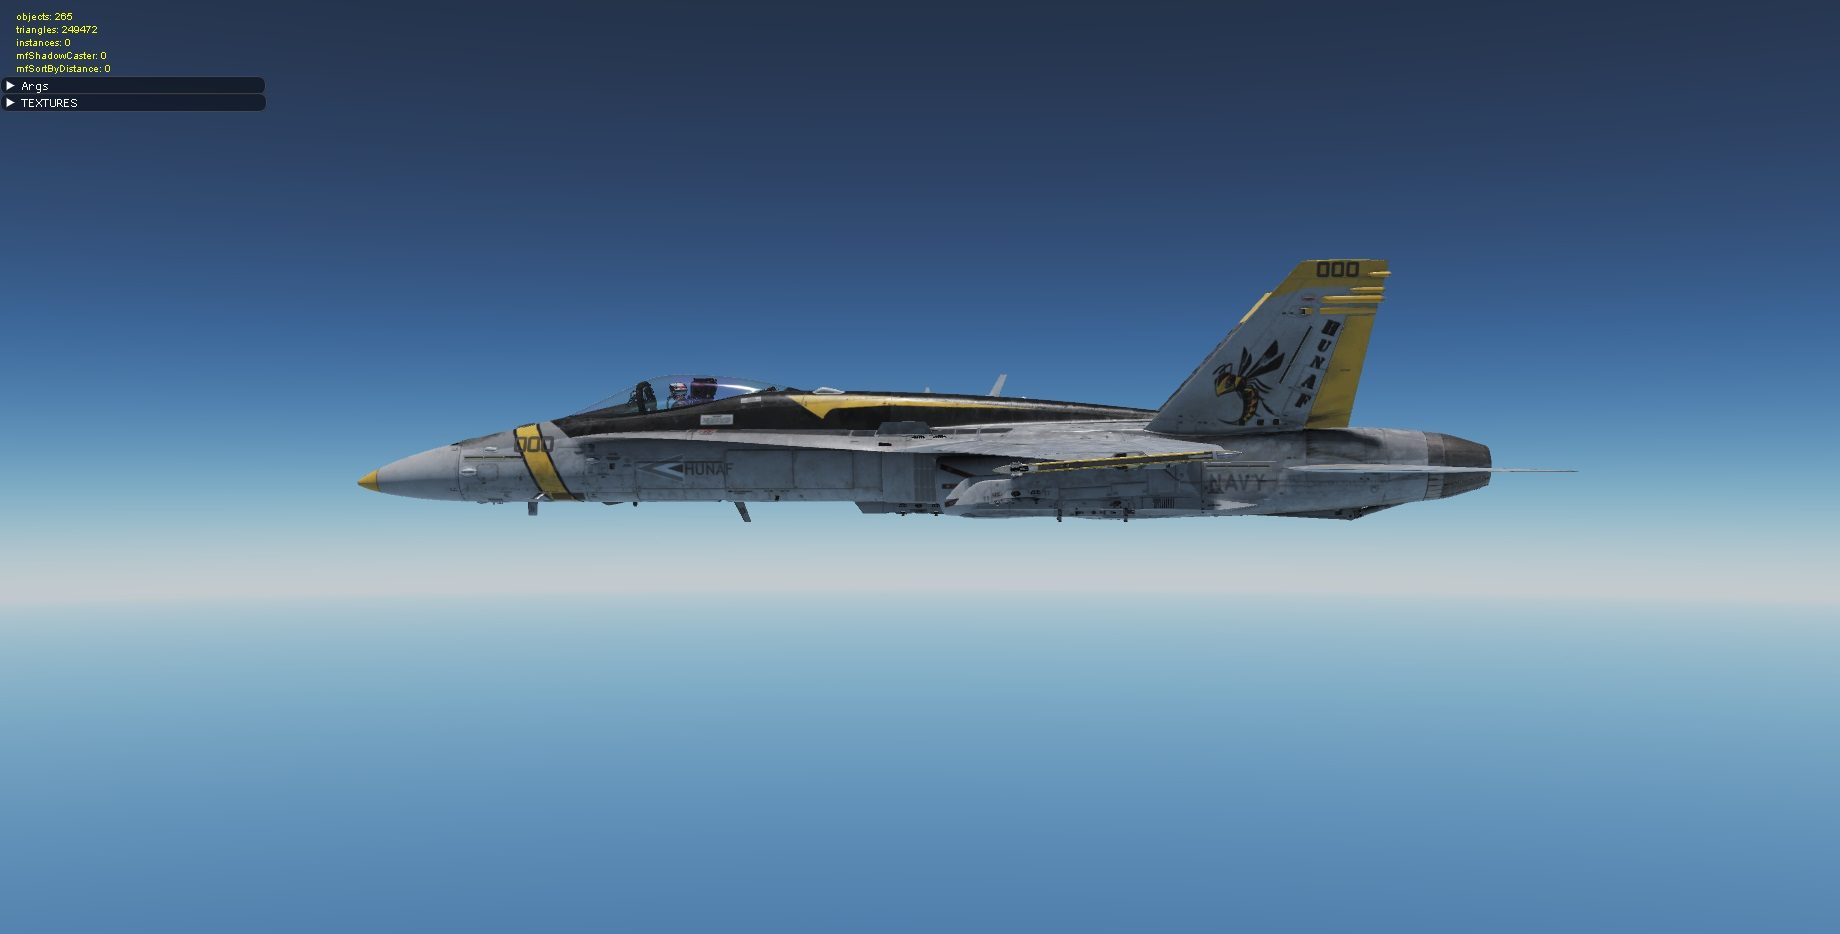 Hungarian F-18C Ghost by Ga-Bika 1.1 (fictional)